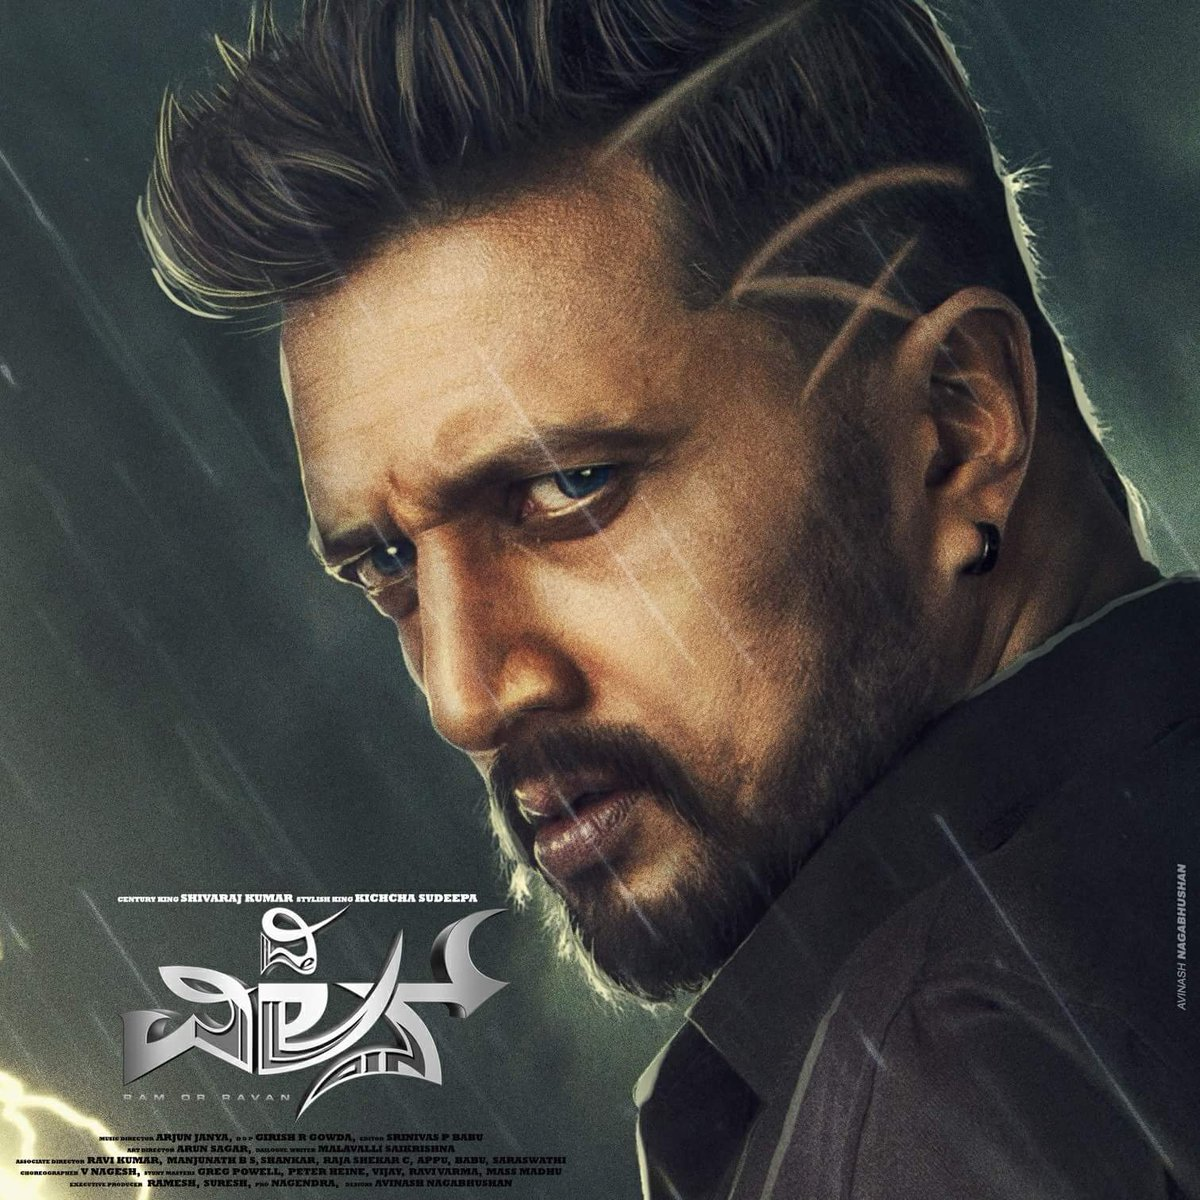 Sudeep Shivaraj Kumar's The Villain First Look Posters Take Their